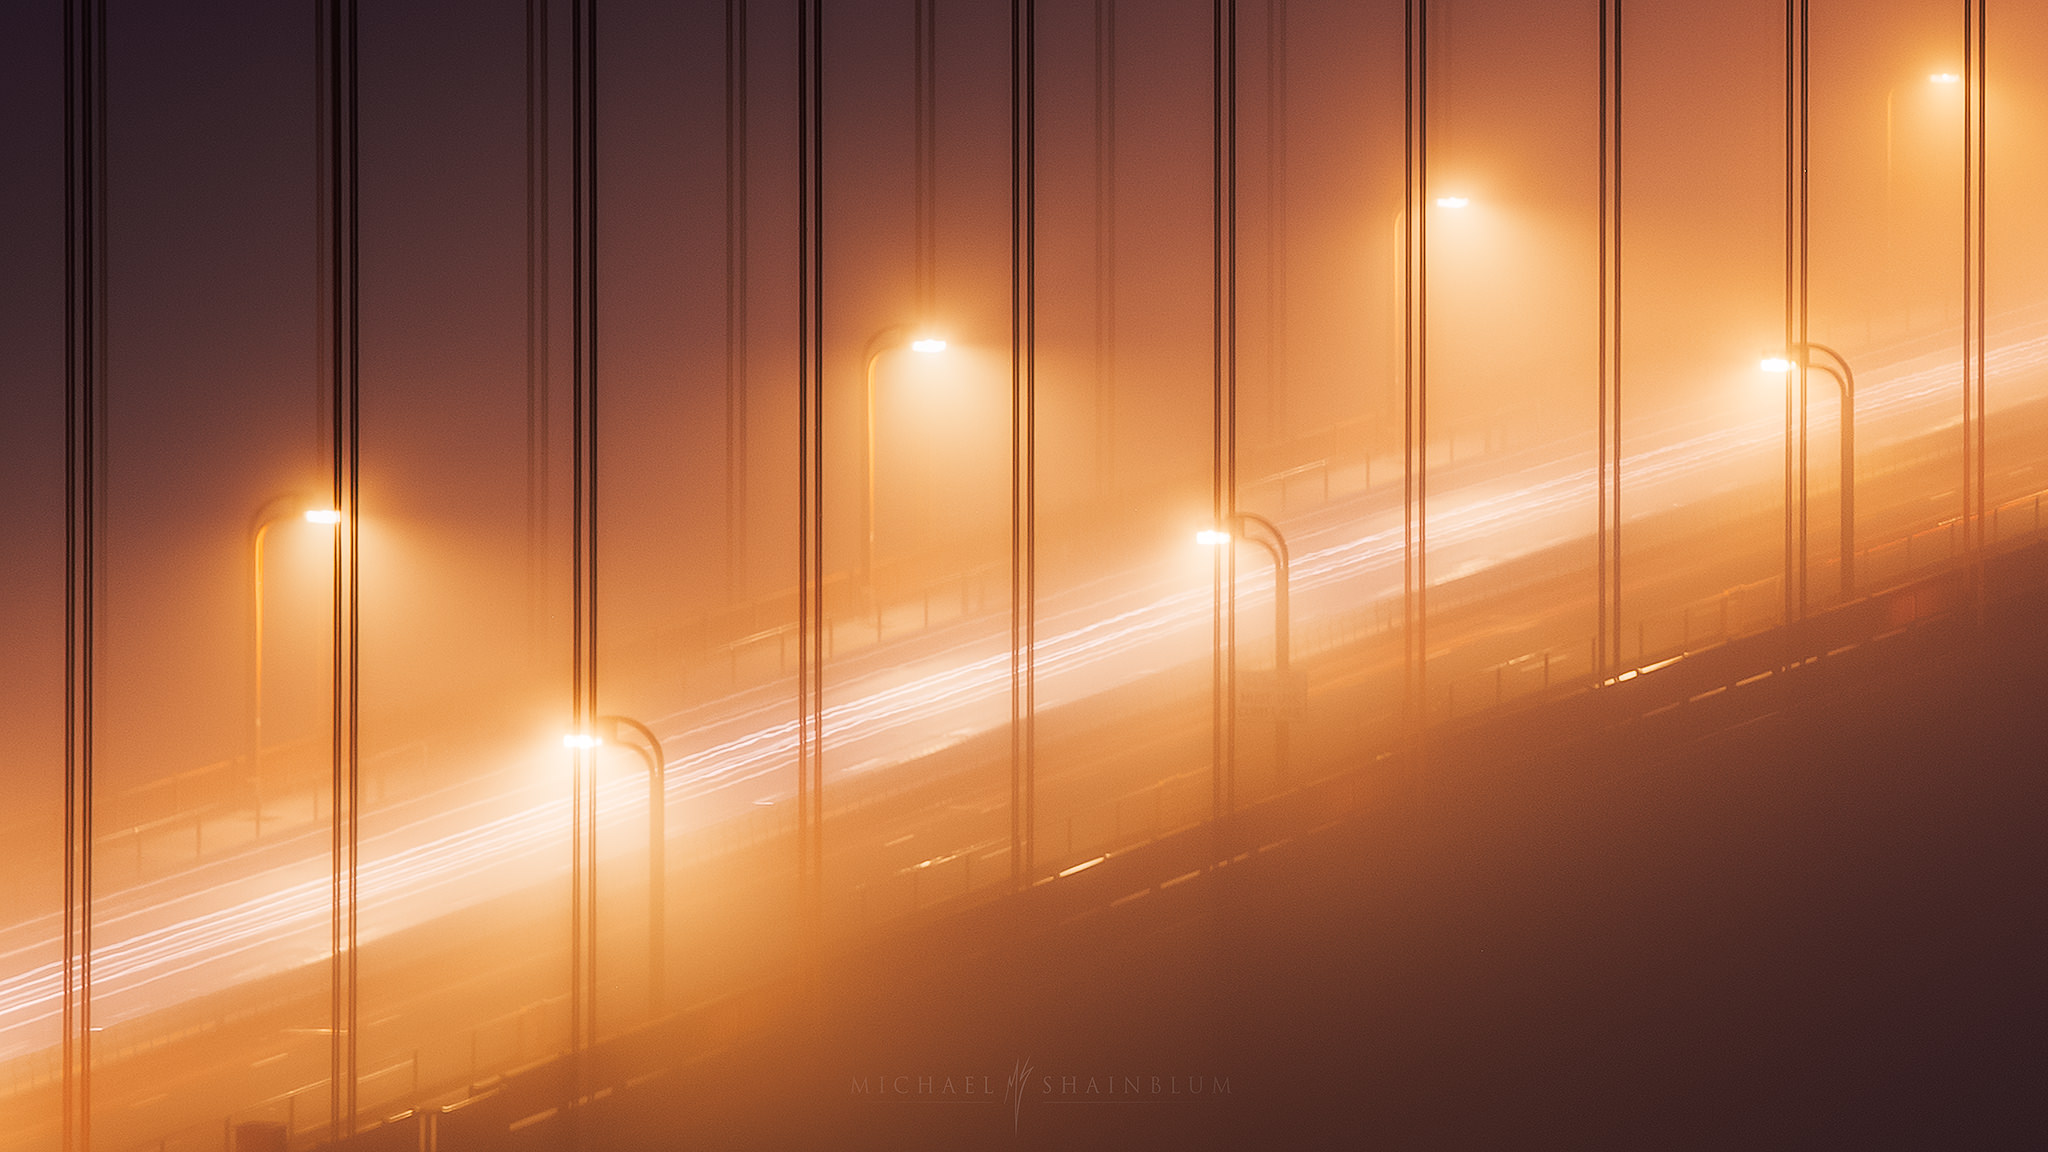 San Francisco Photography, Golden Gate Bridge Fog